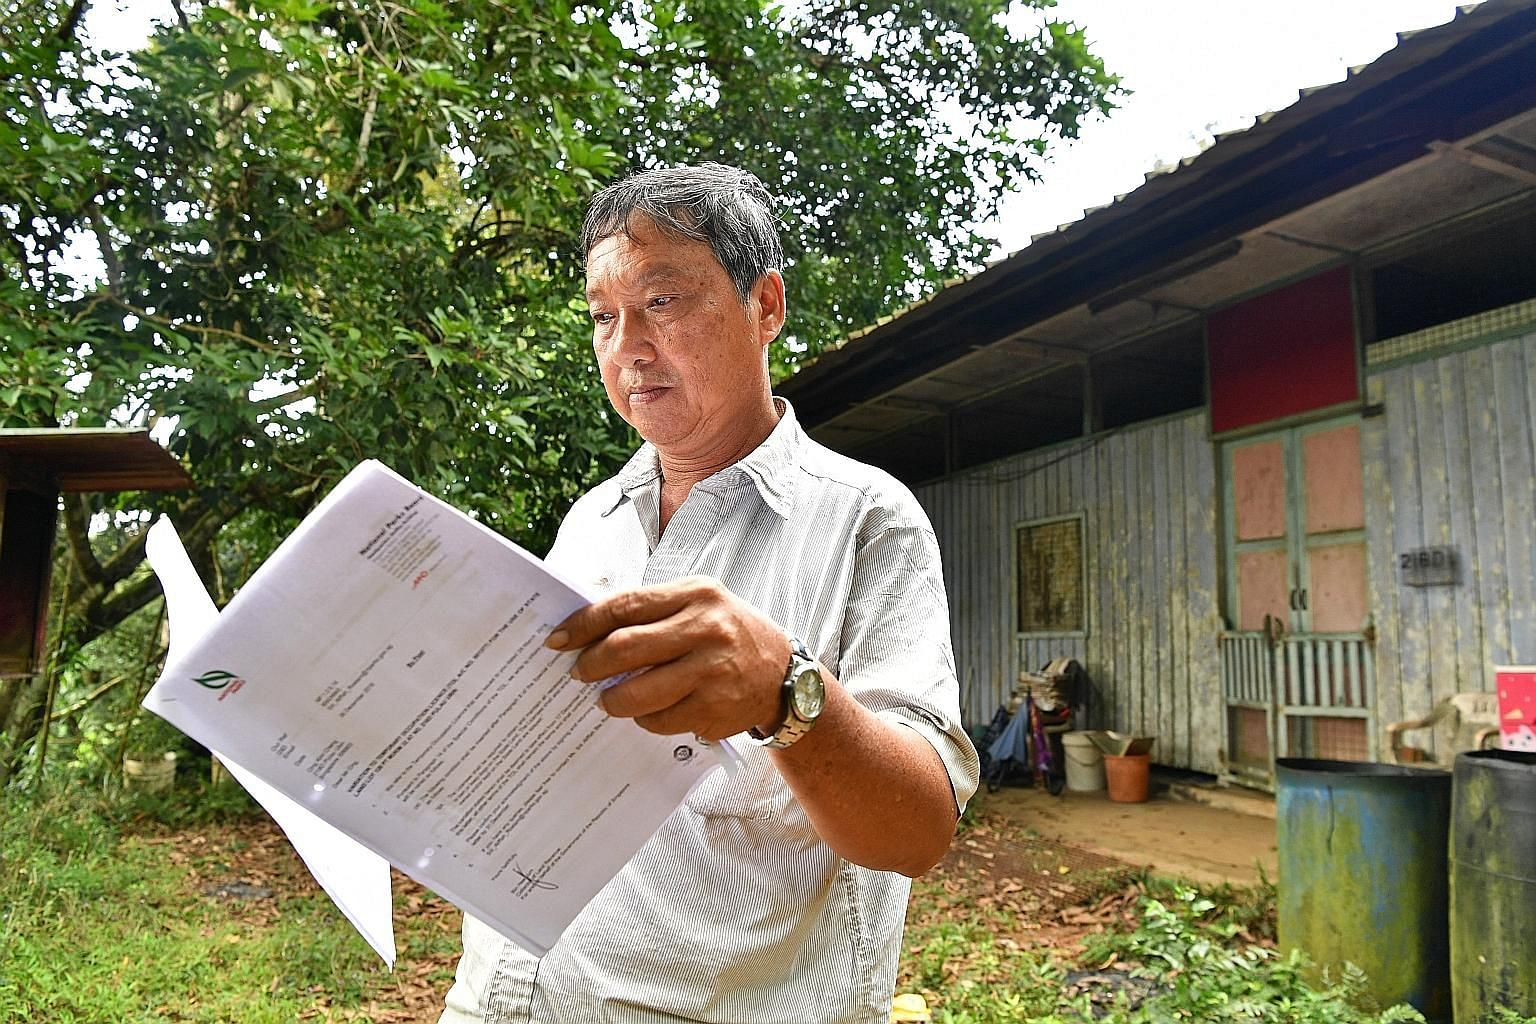 Mr Ong Kim Cheng reading the NParks' Temporary Occupation Licence agreement outside his house. The taxi driver who was born on Pulau Ubin continues to live alone in the house built by his late parents.